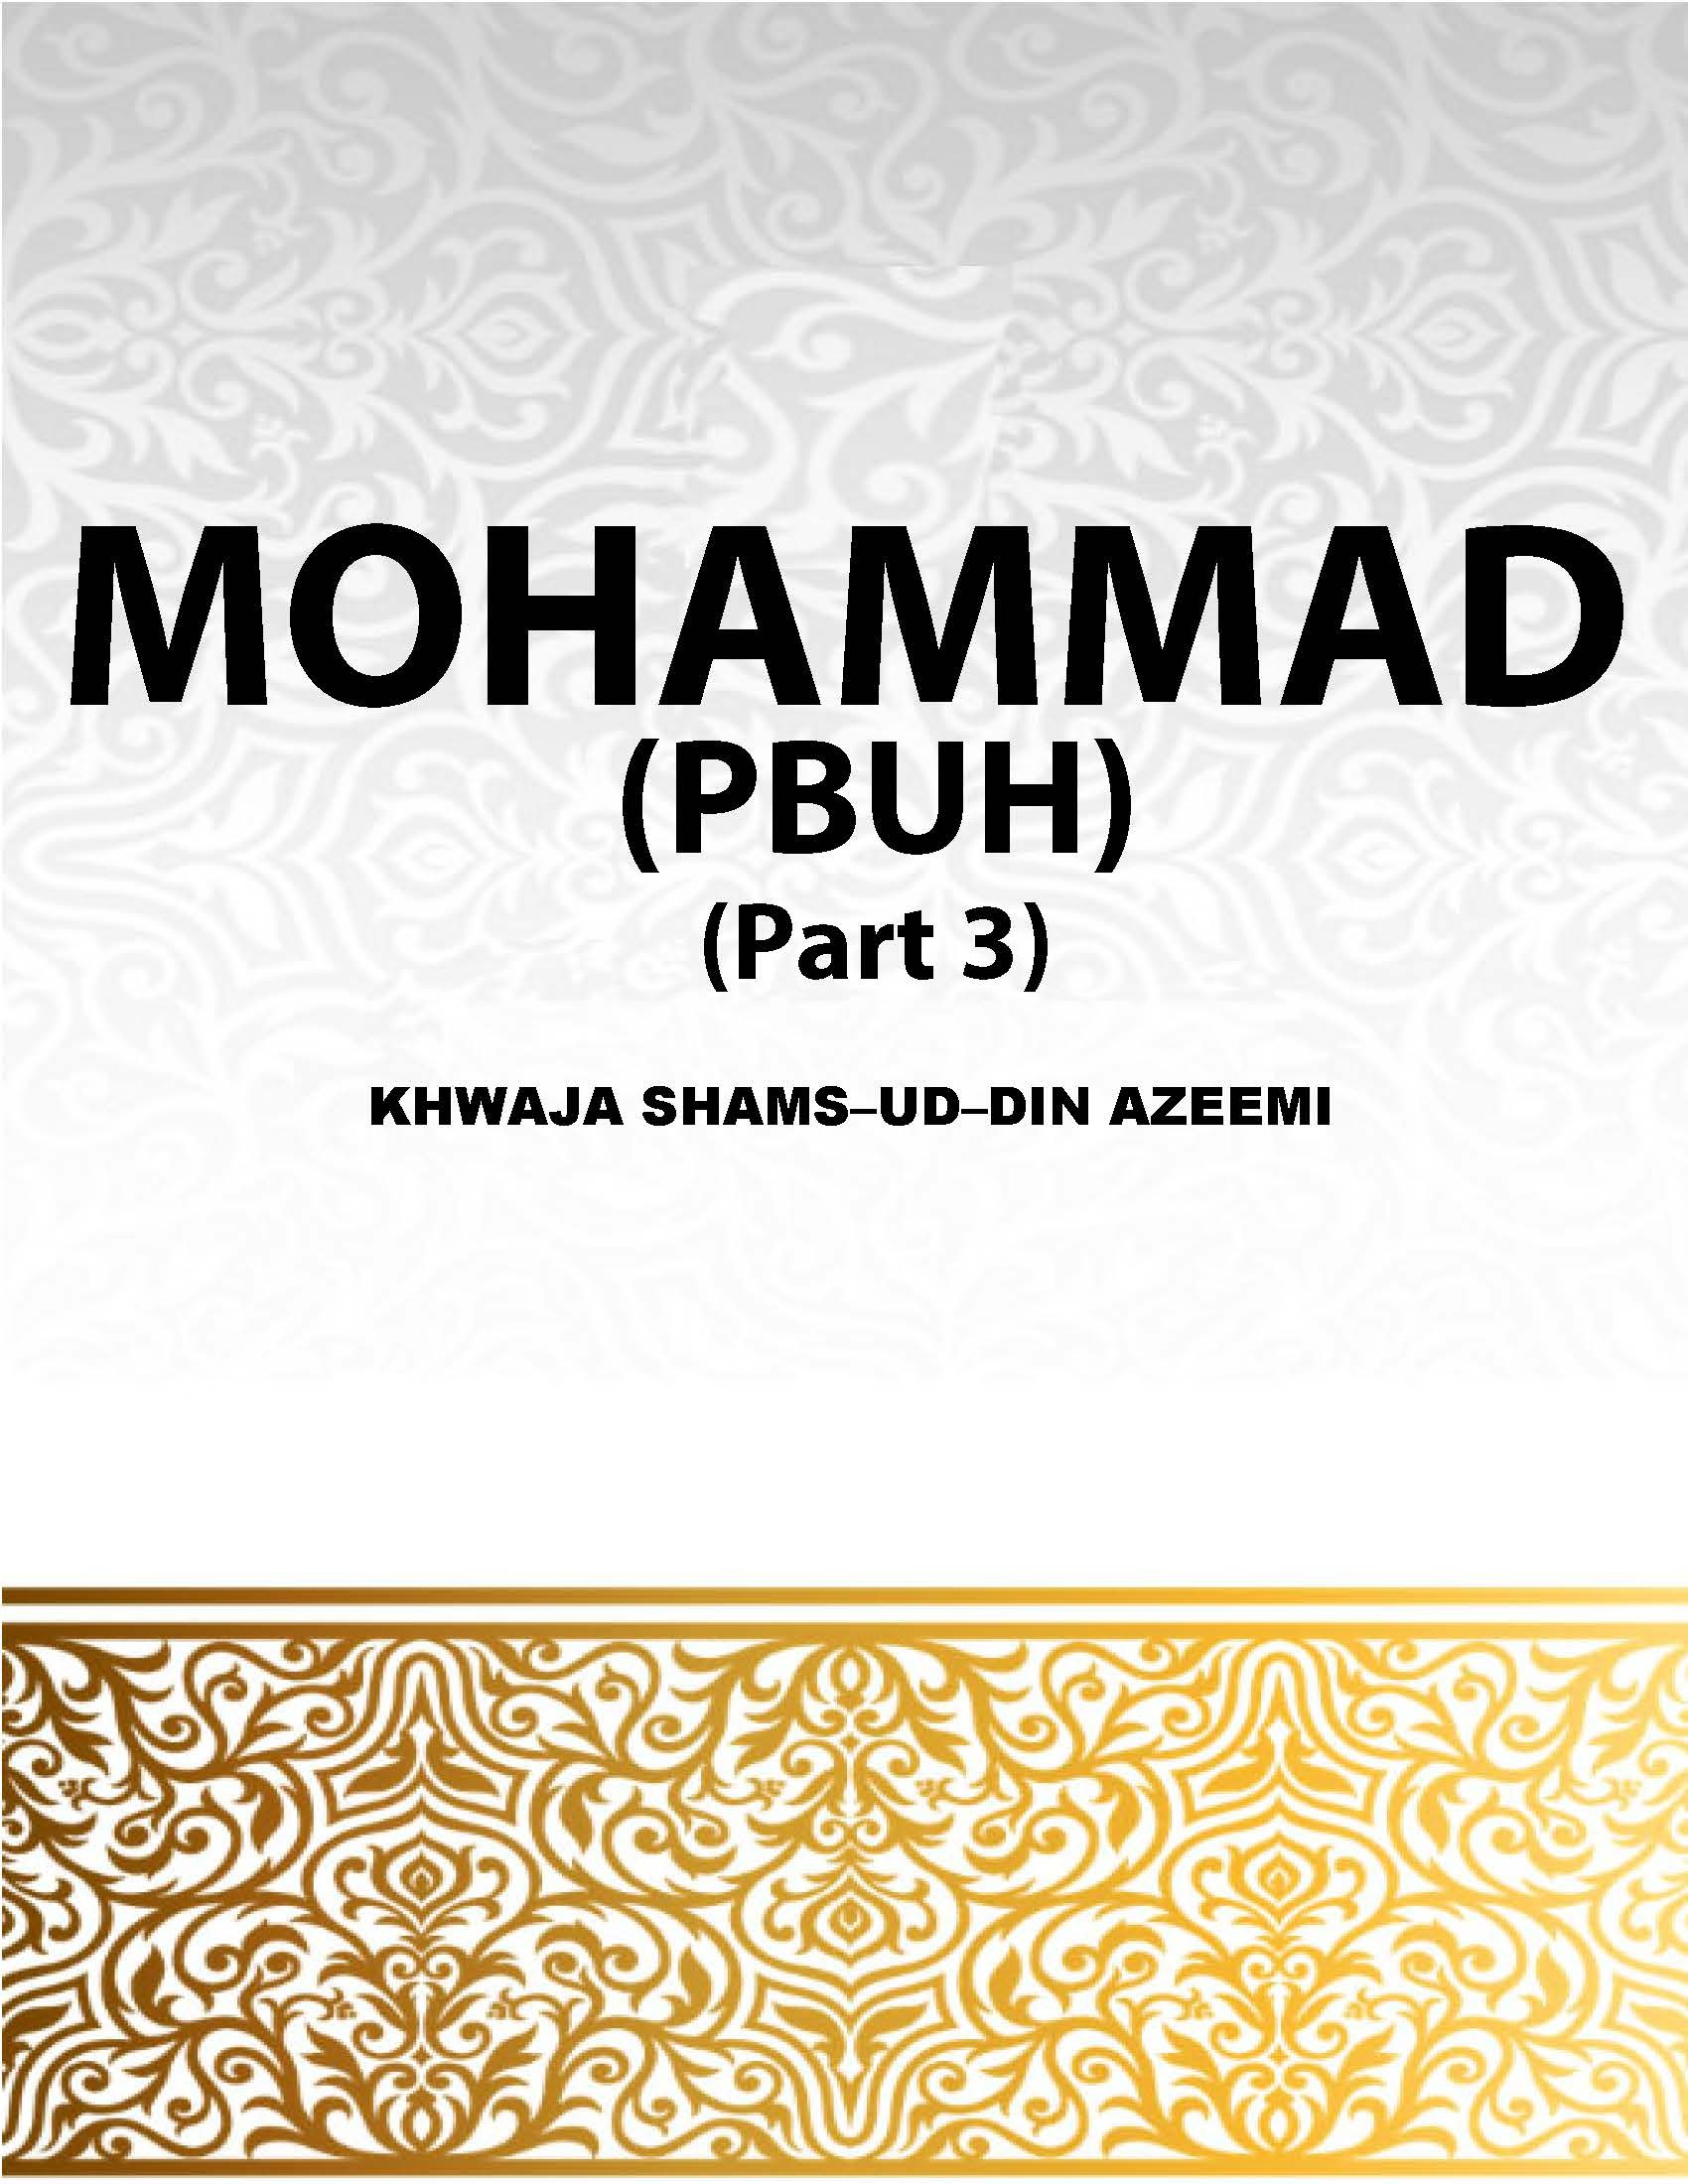 MOHAMMAD (PBUH) The Prophet Of God Part (III)